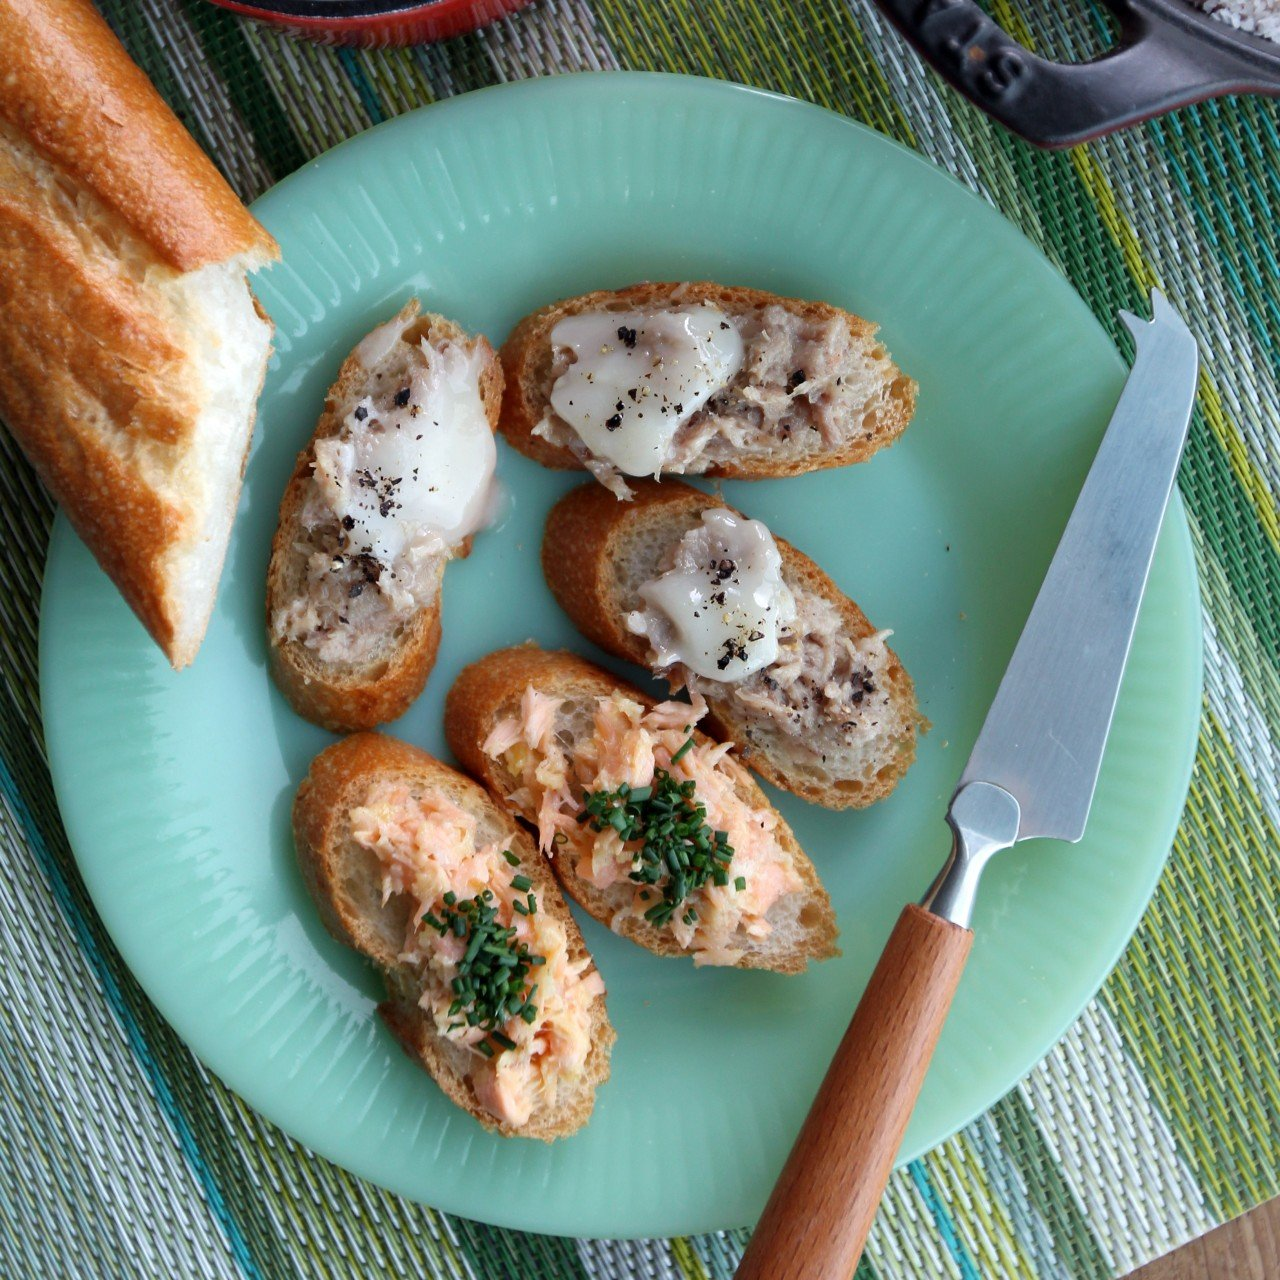 Three home-made charcuterie recipes: duck rillettes, duck